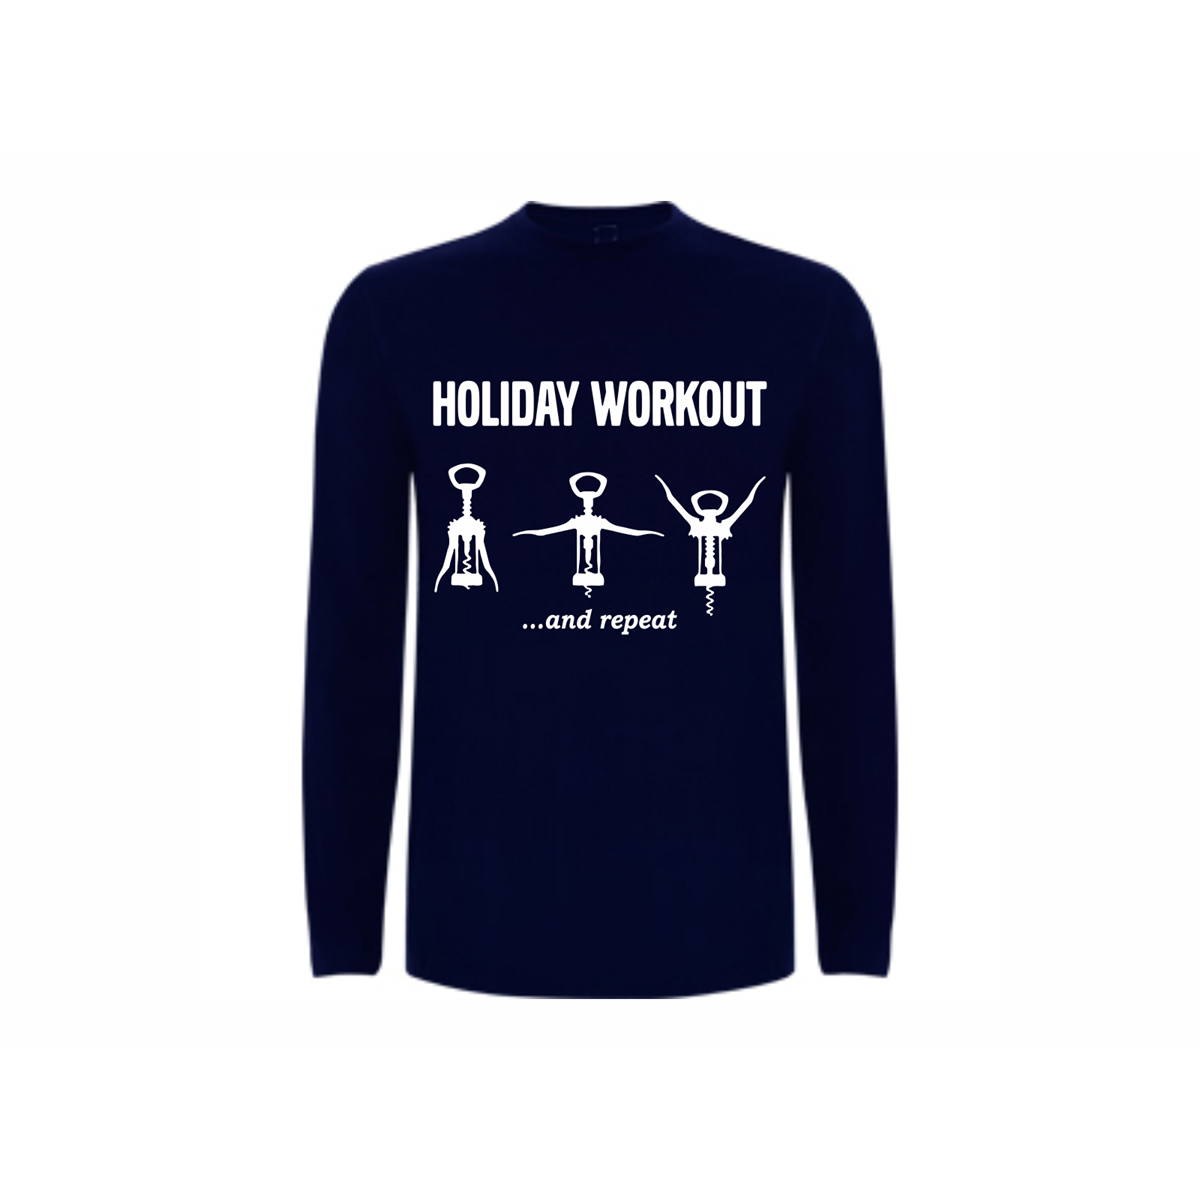 T shirt ls holiday workout for Design your own workout shirt